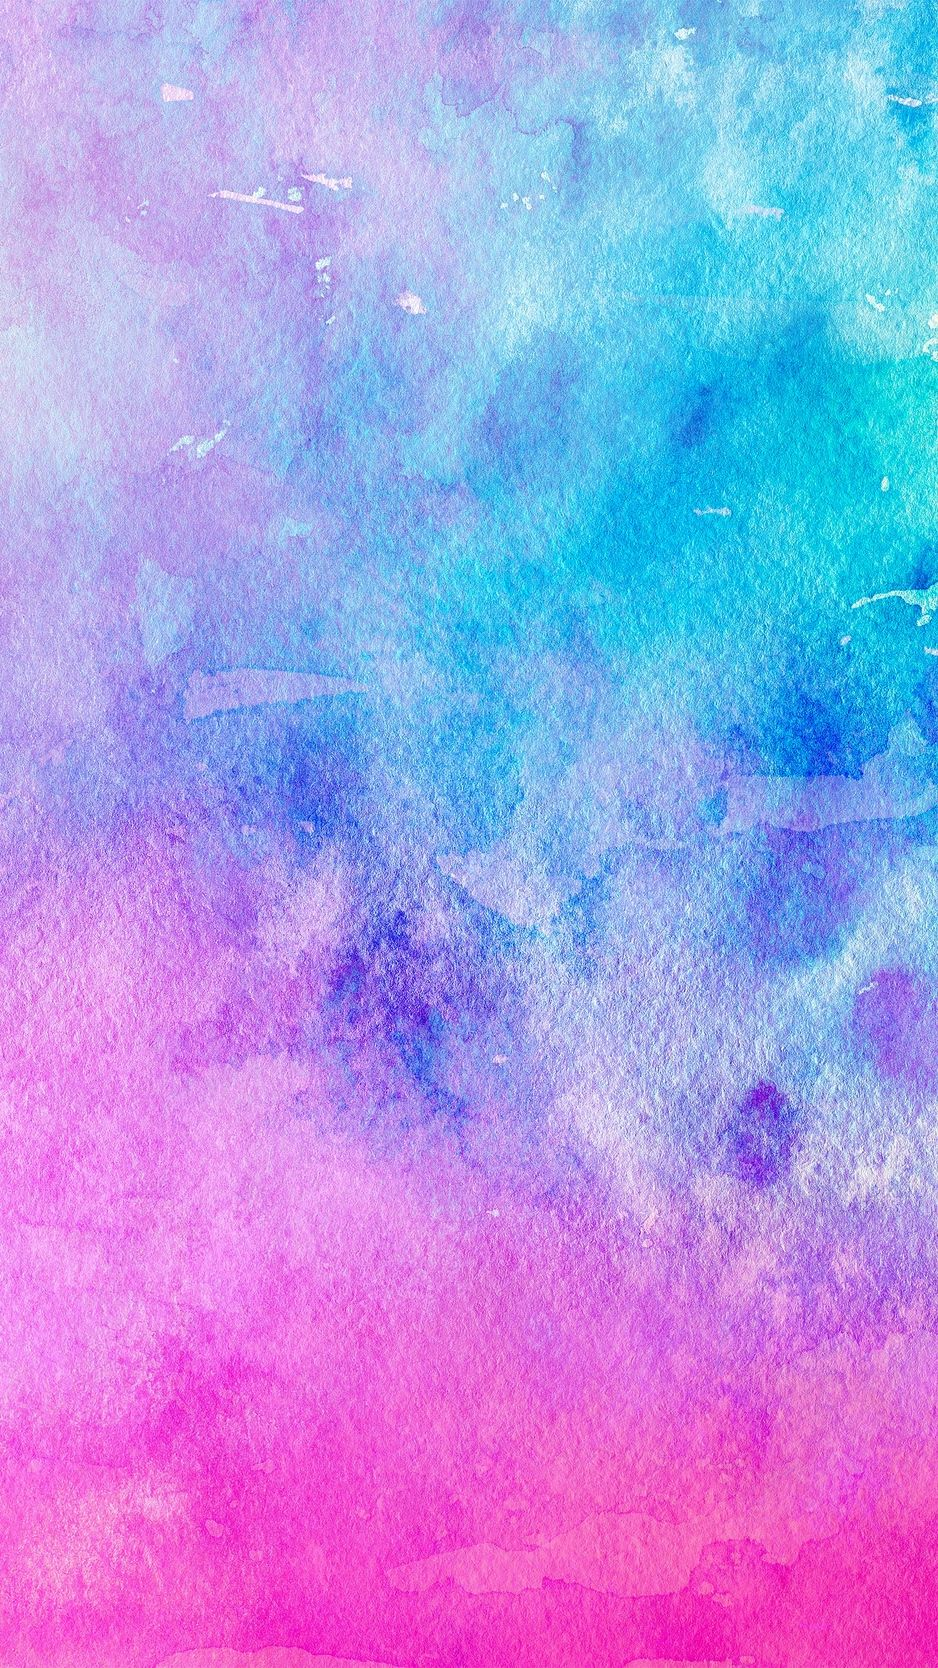 Watercolor Iphone Wallpapers Top Free Watercolor Iphone Backgrounds Wallpaperaccess